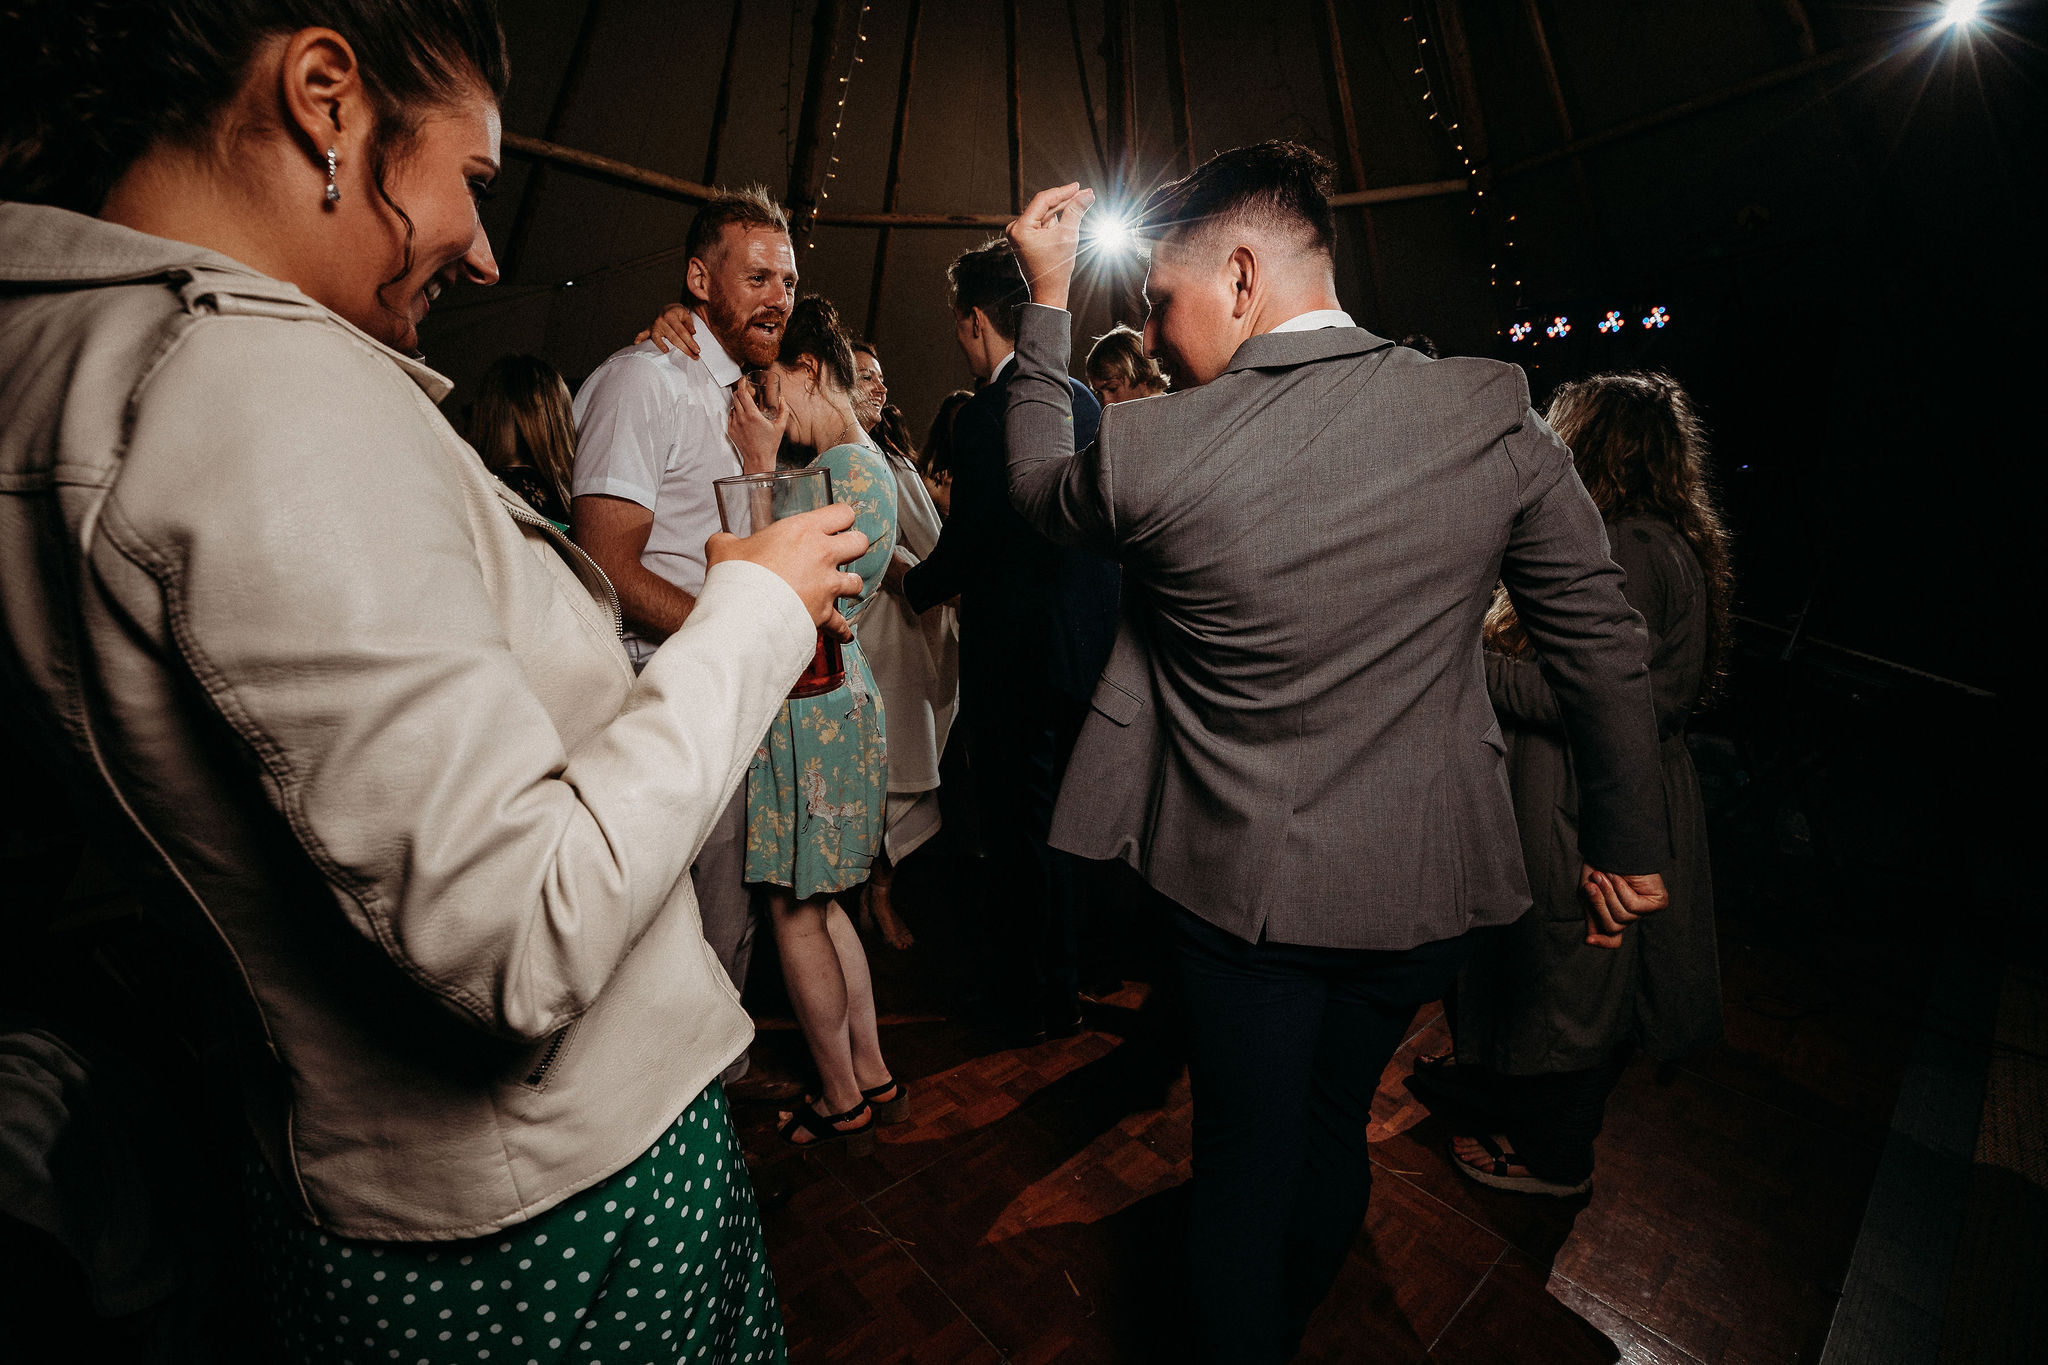 Wedding guests dancing in tipi